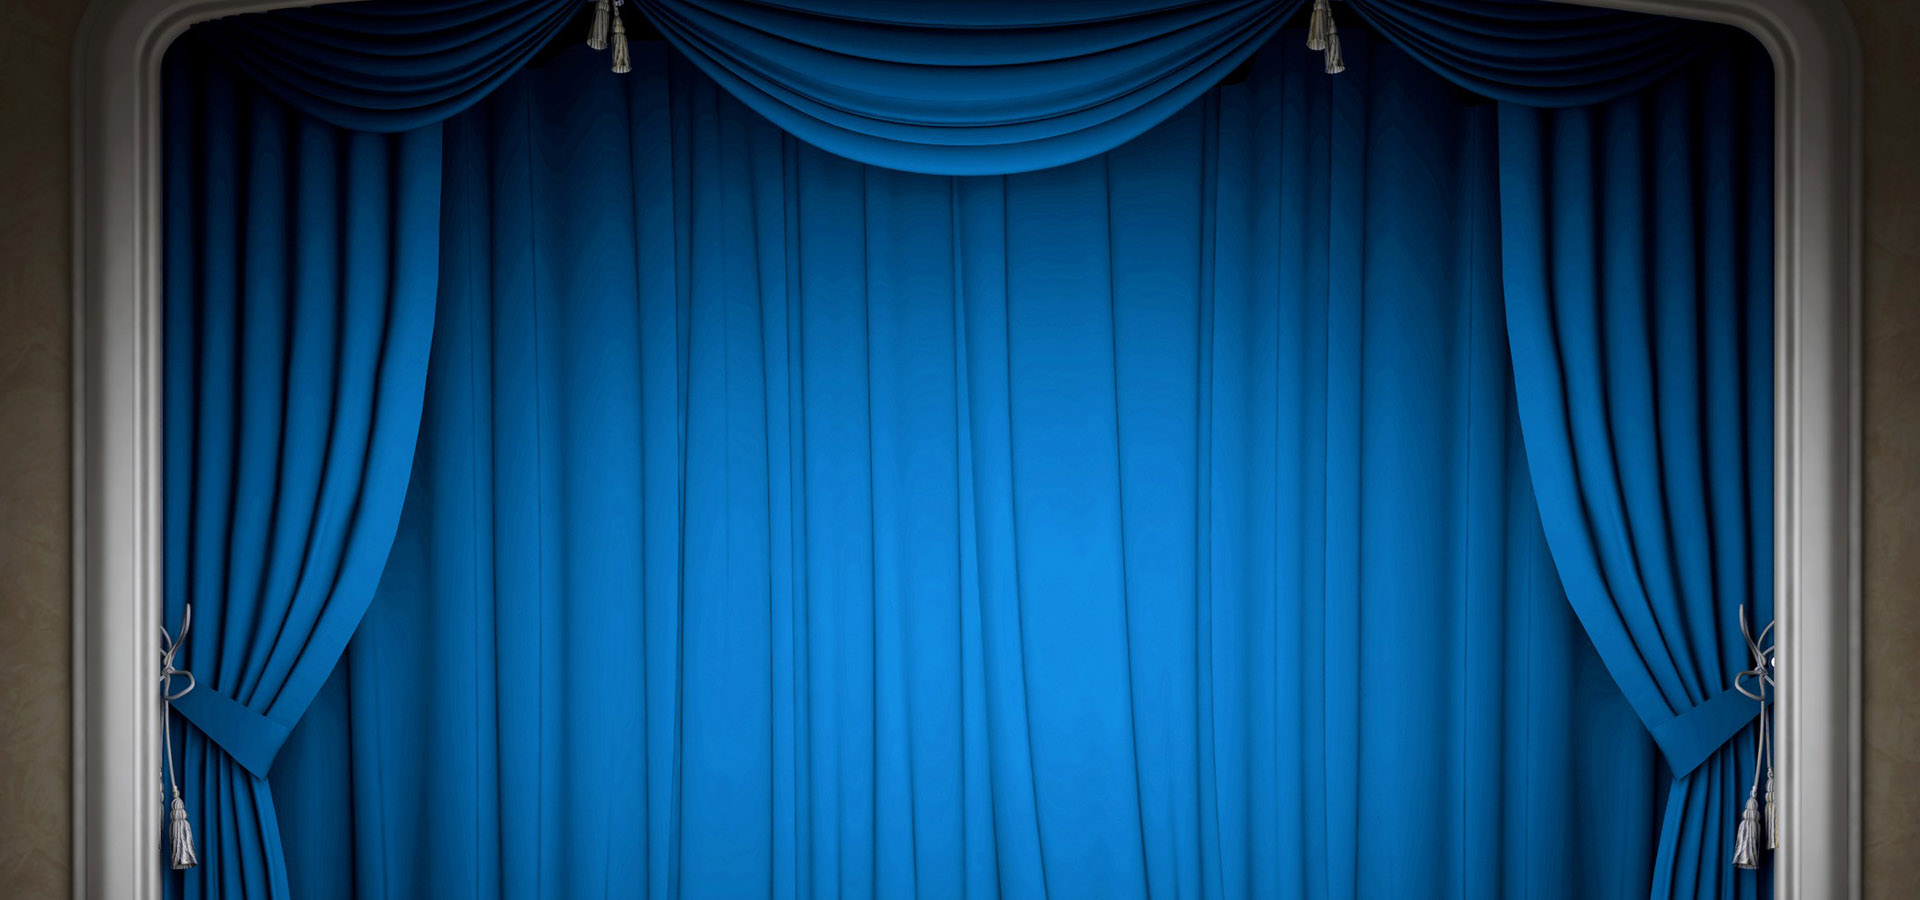 Blue Curtain Stage Background Curtain Drapes Poster